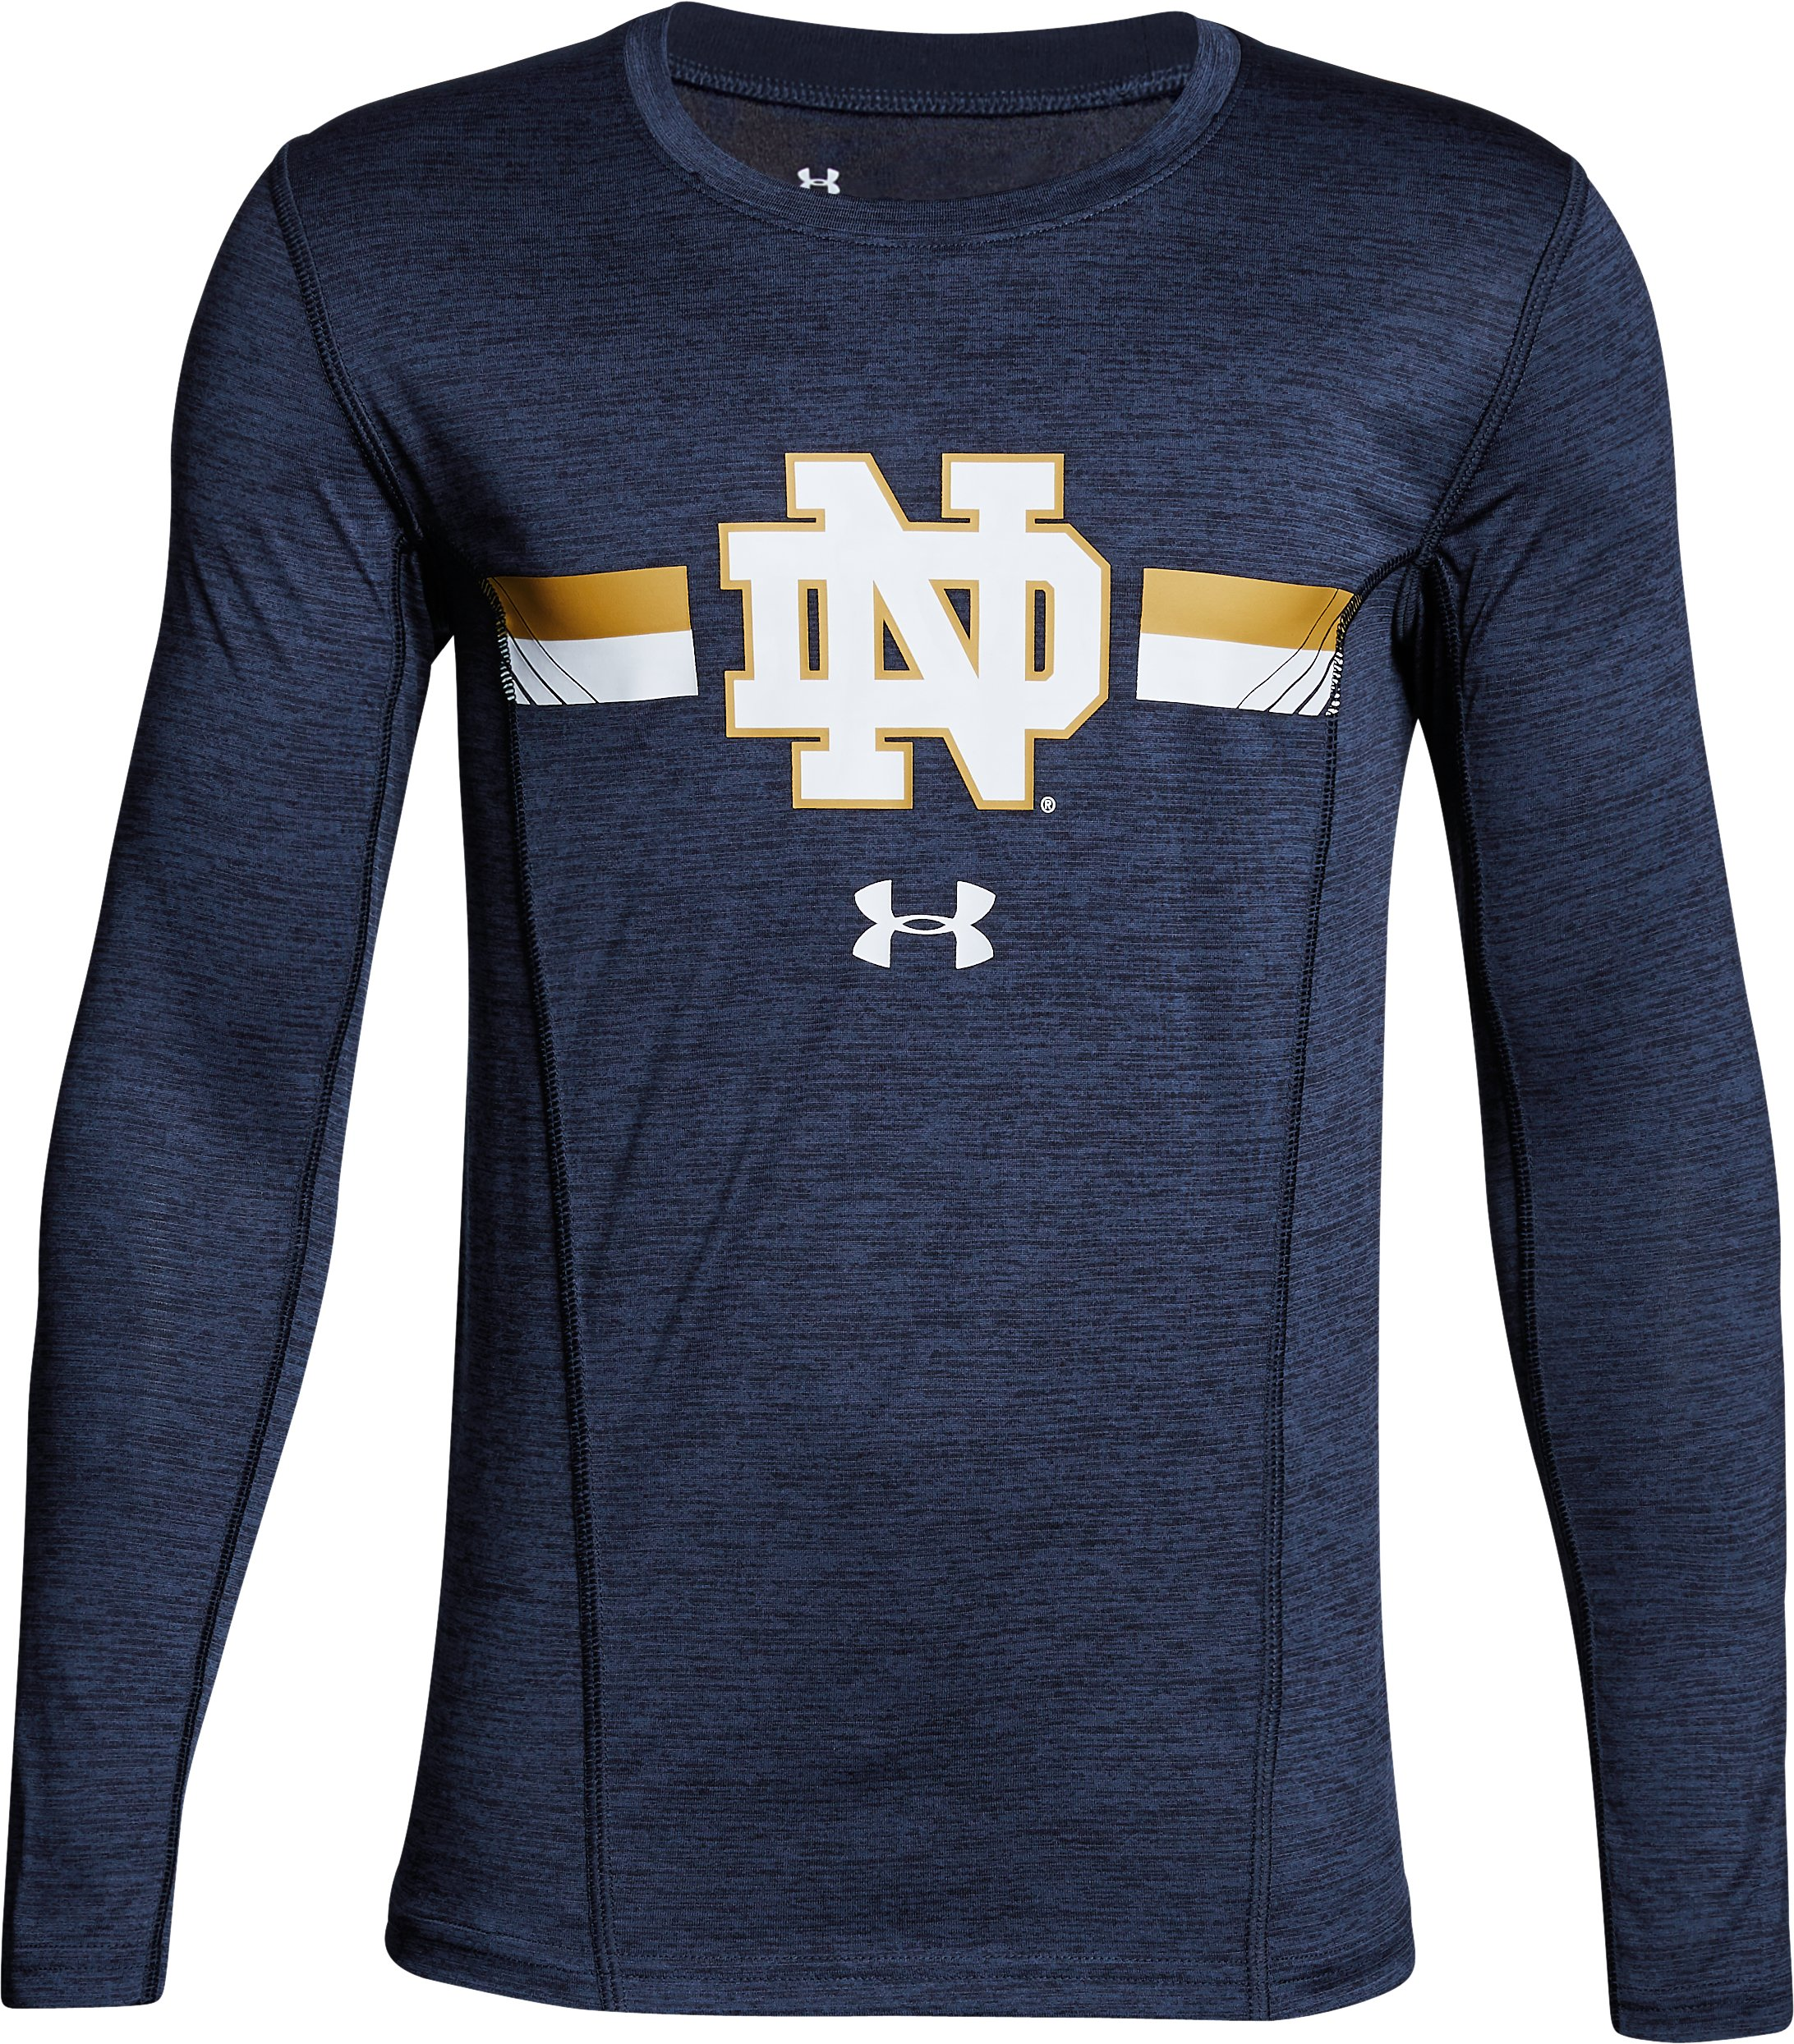 Boys' Notre Dame Long Sleeve Training T-Shirt, Midnight Navy